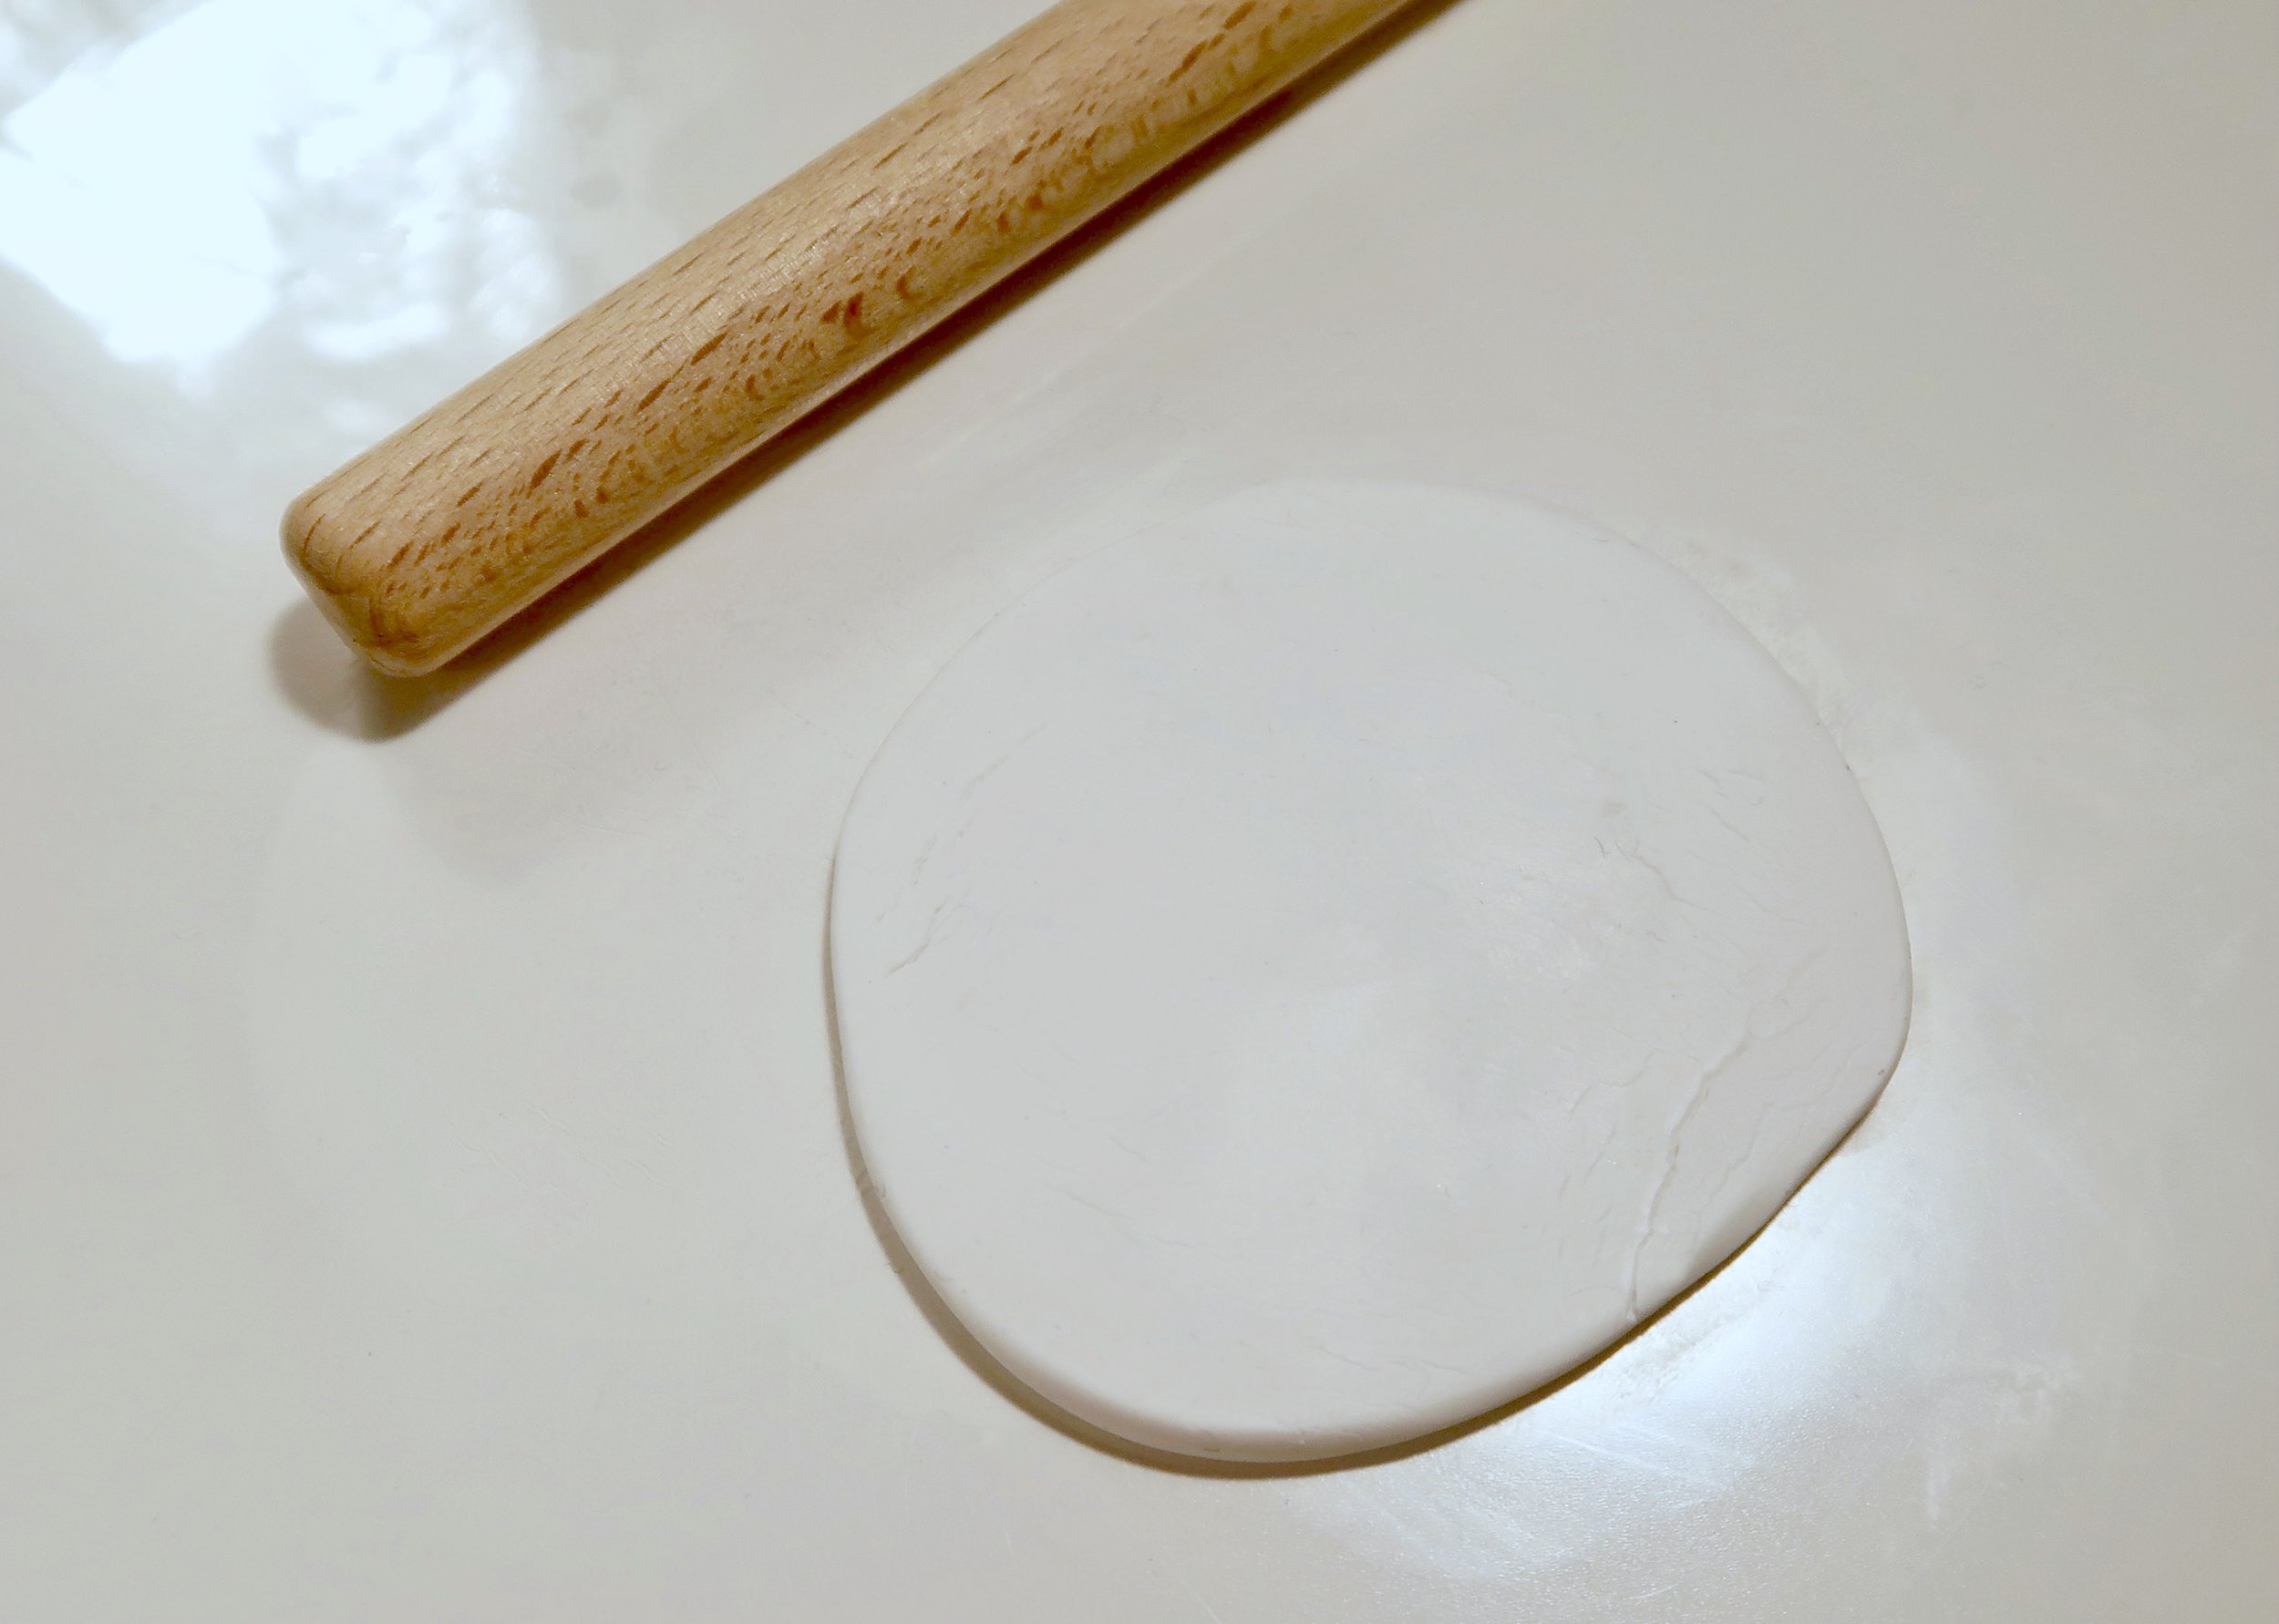 1. - First of all, you want to soften some clay in your hands and roll it out so that it is larger than your cutter or cookie cutter. Although I didn't use it myself this time (I seem to have misplaced it!) an acrylic roller works really well for this.